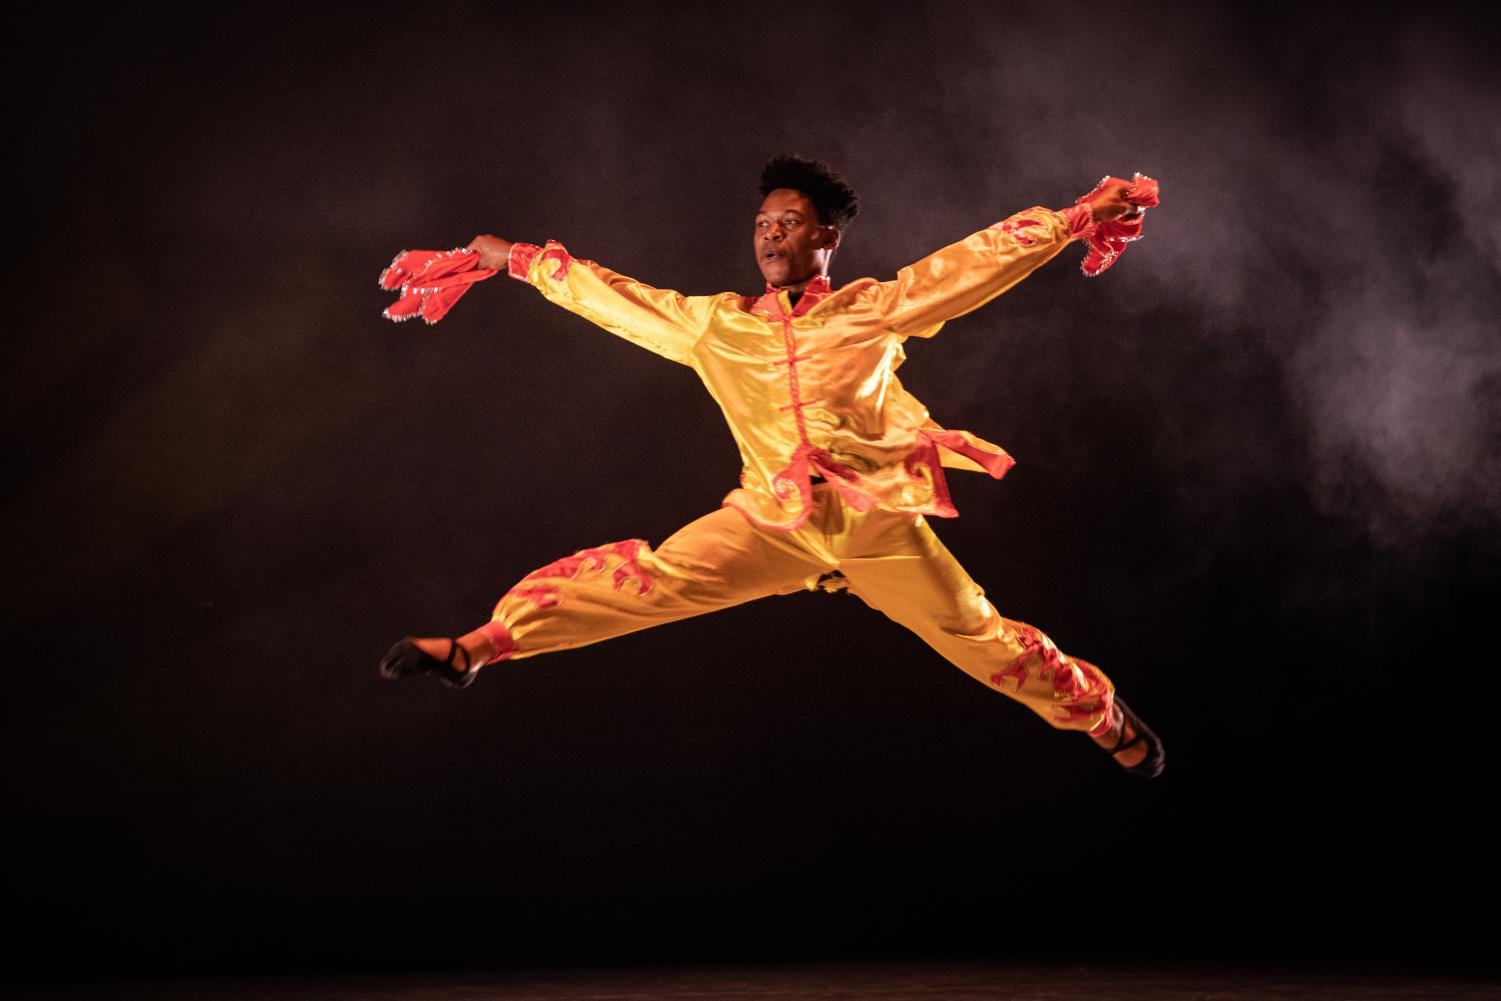 Michael Warner performs in a traditional Chinese dance titled